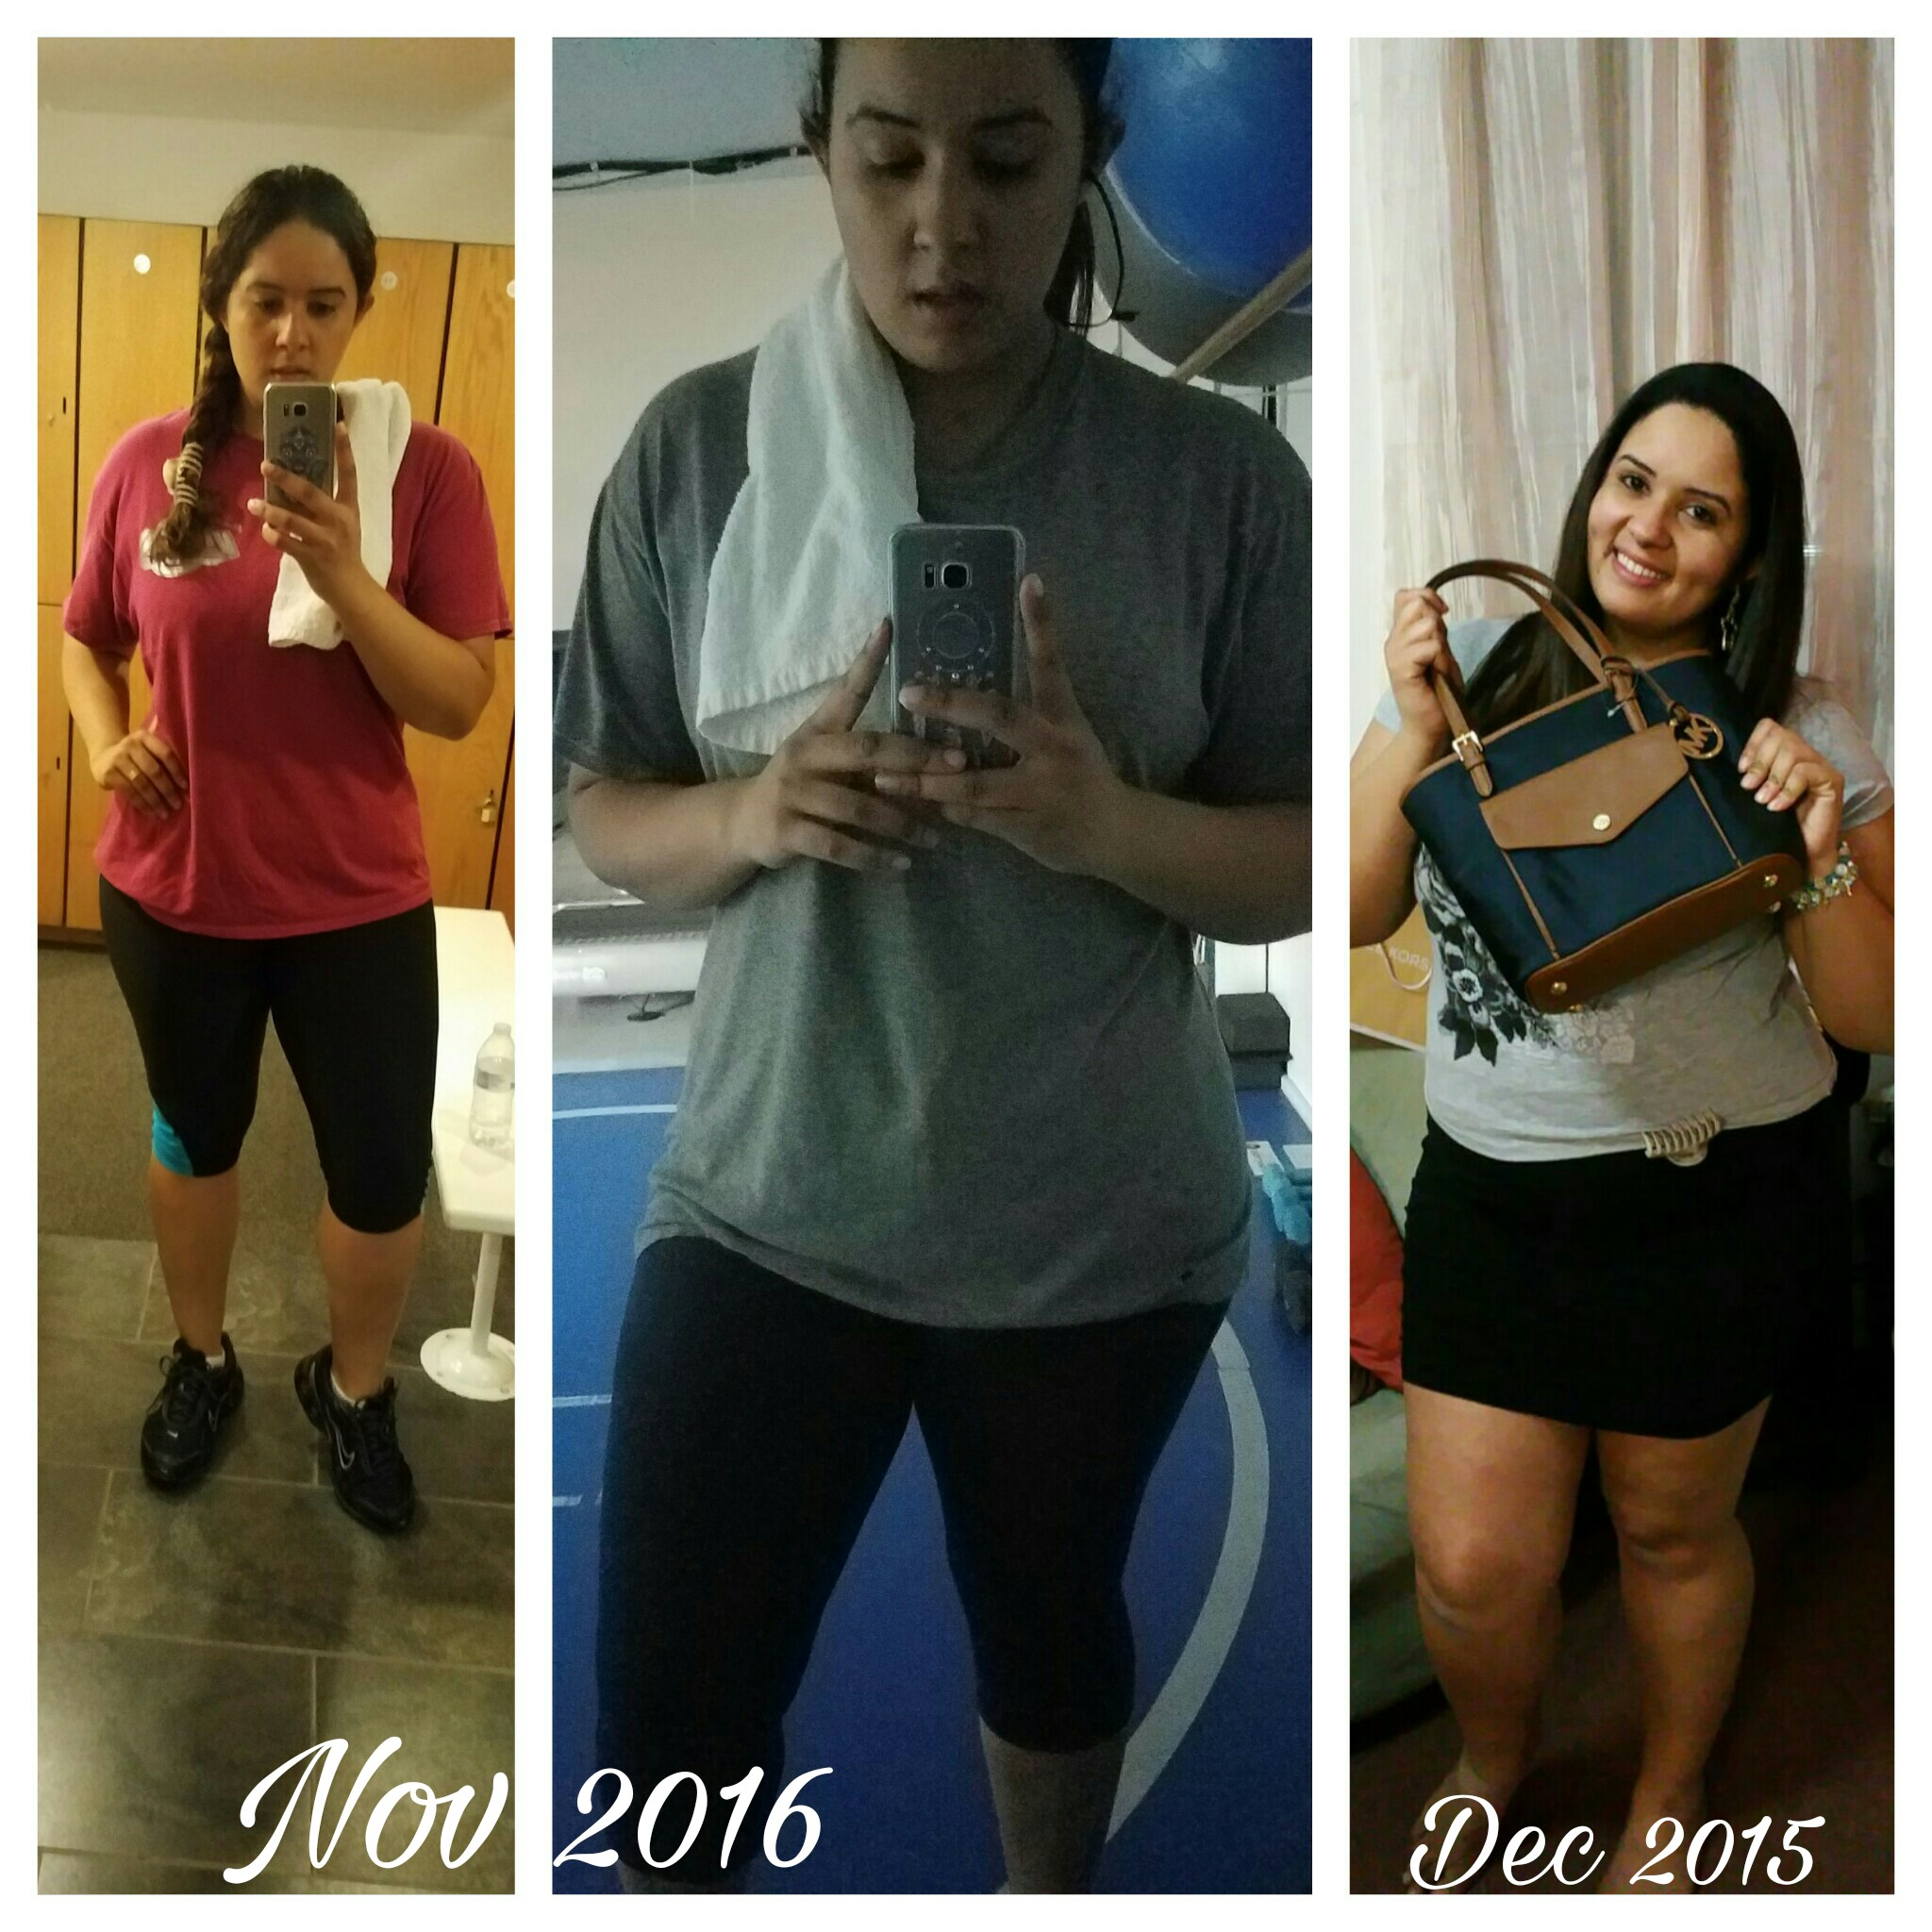 Sterfany lost 30 pounds! See my before and after weight loss pictures, and read amazing weight loss success stories from real women and their best weight loss diet plans and programs. Motivation to lose weight with walking and inspiration from before and after weightloss pics and photos.